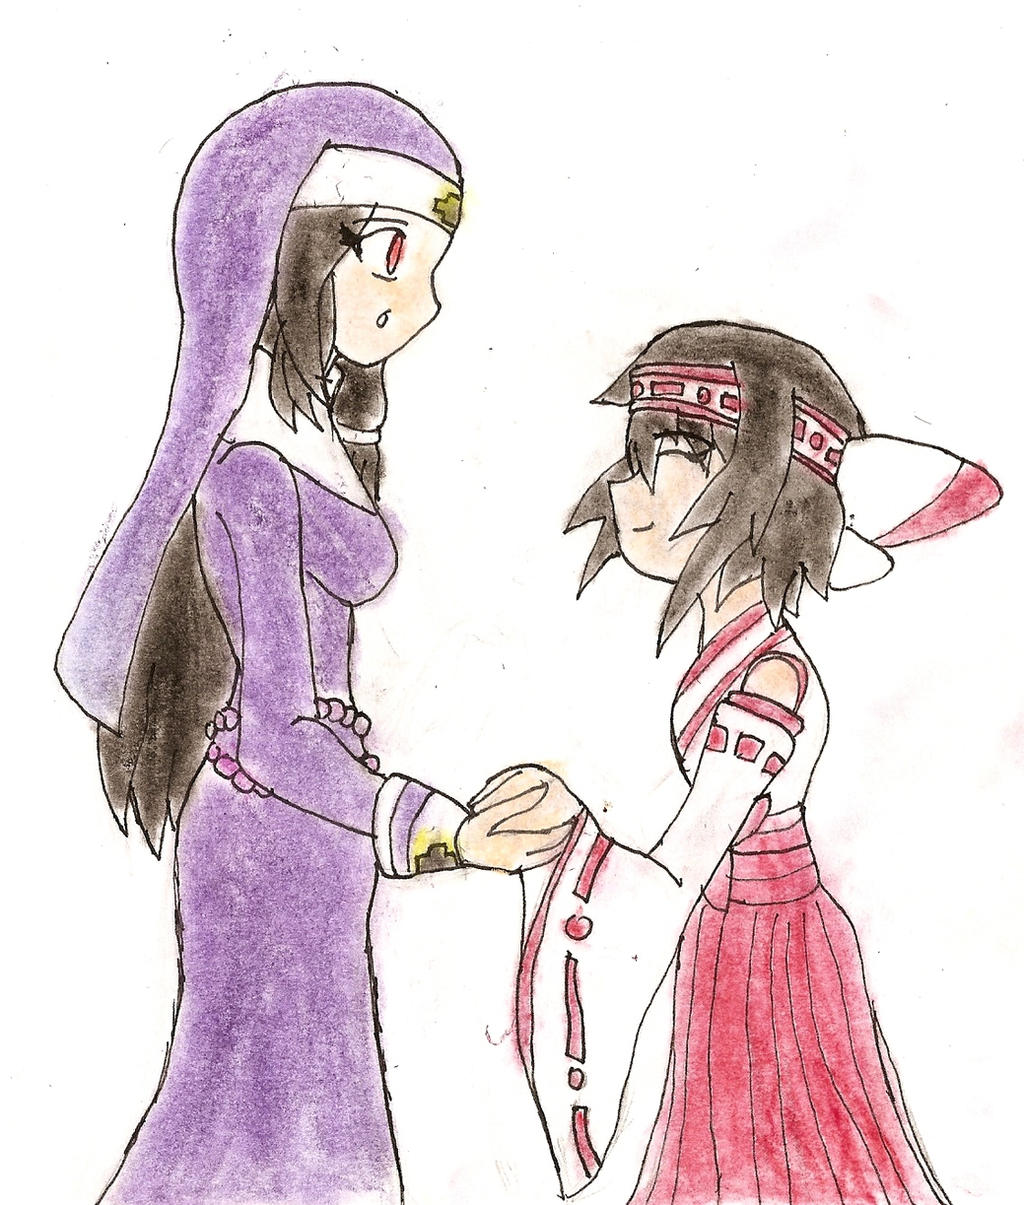 Rqst-3: The Nun and the Miko by NeonNeoz